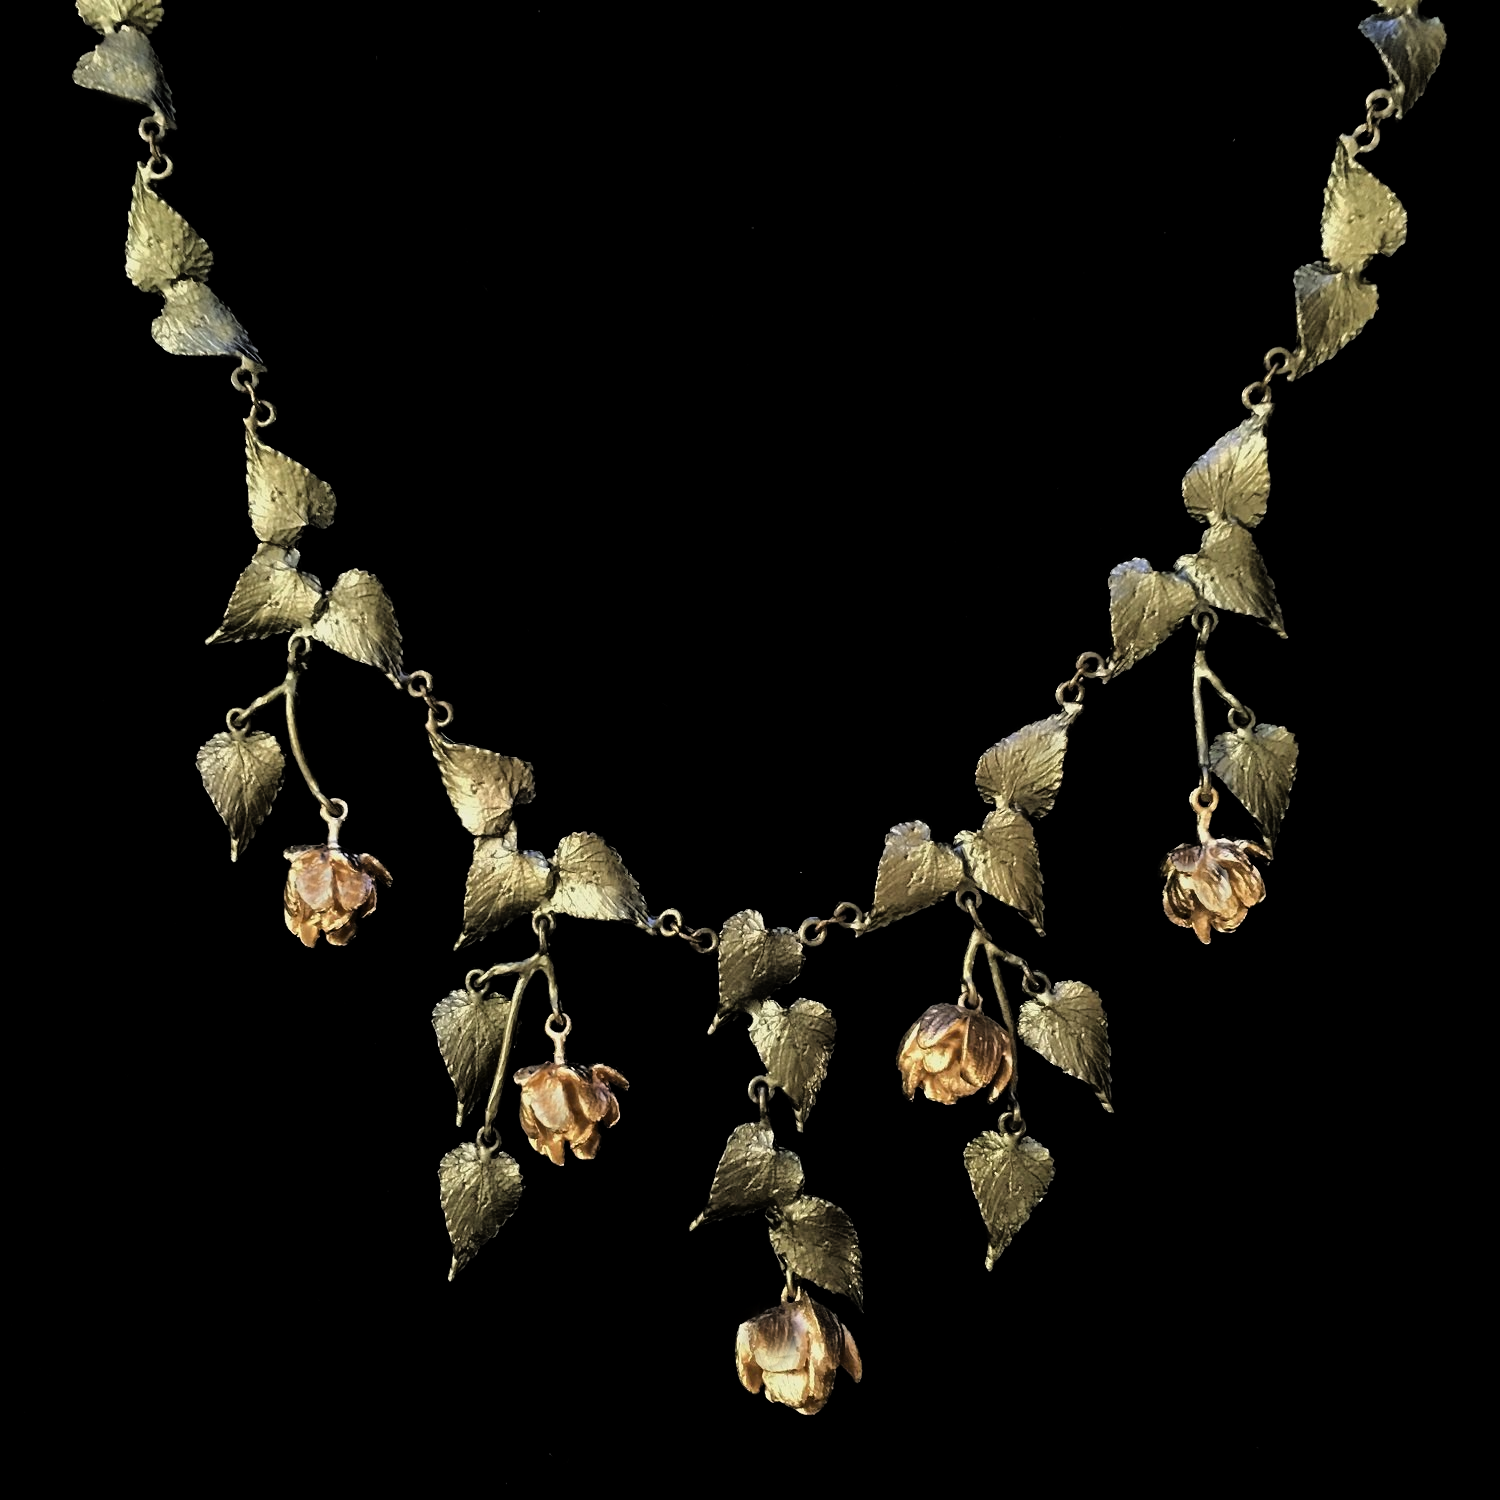 Hops Necklace - Statement